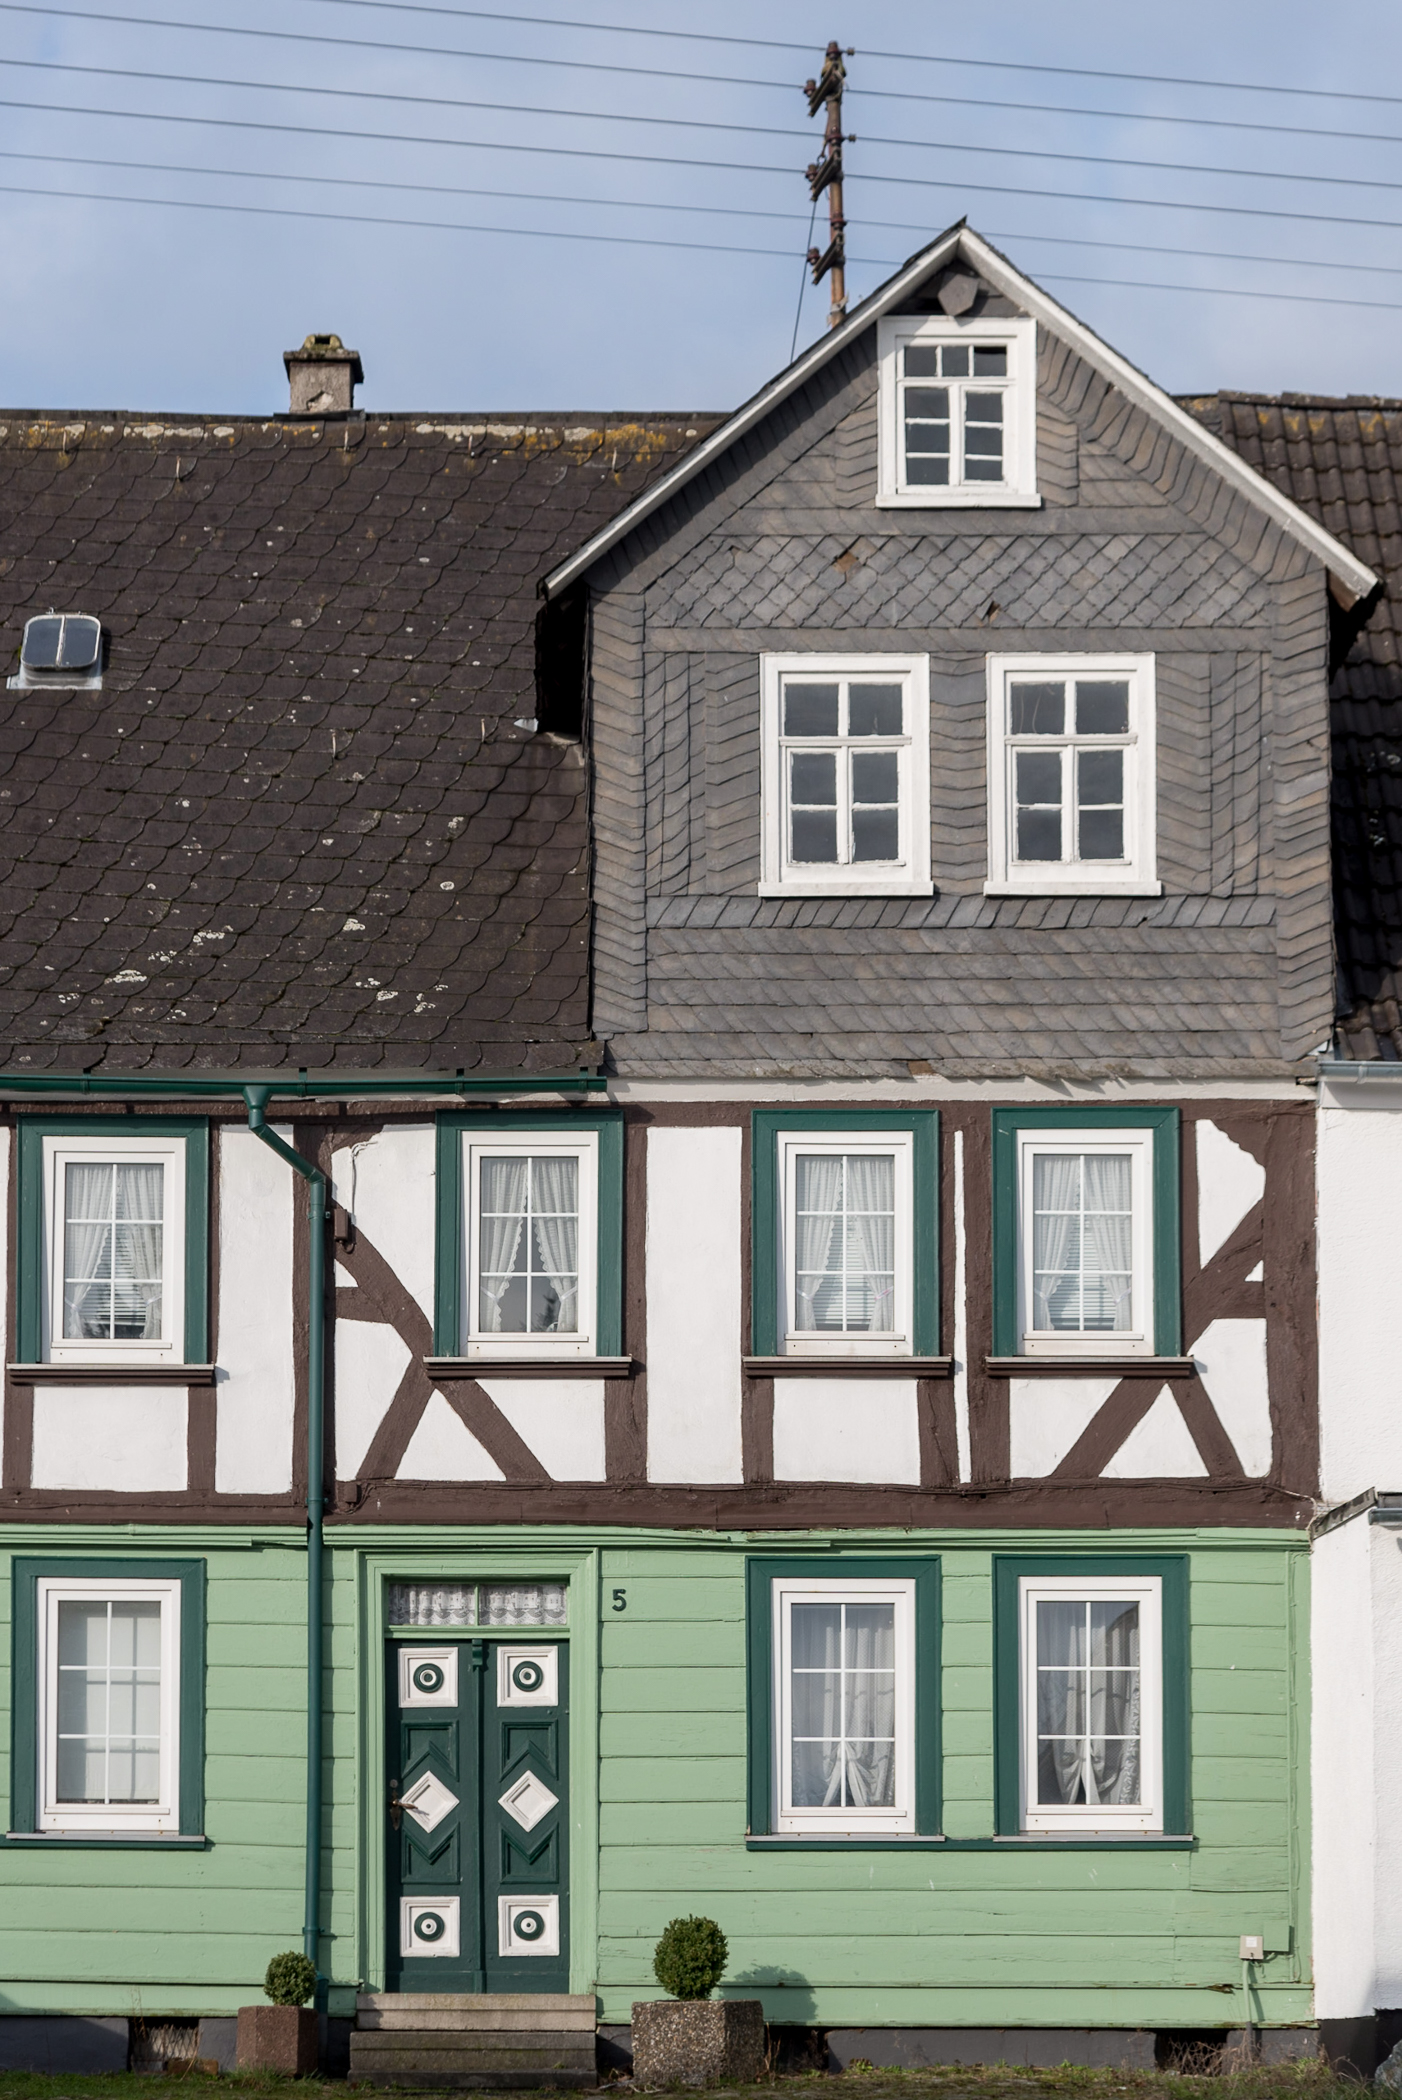 This German home in Holzhausen, Germany, features a multi-story, half-timbered design, as well as slate shingle siding and brightly-painted window frames and door.